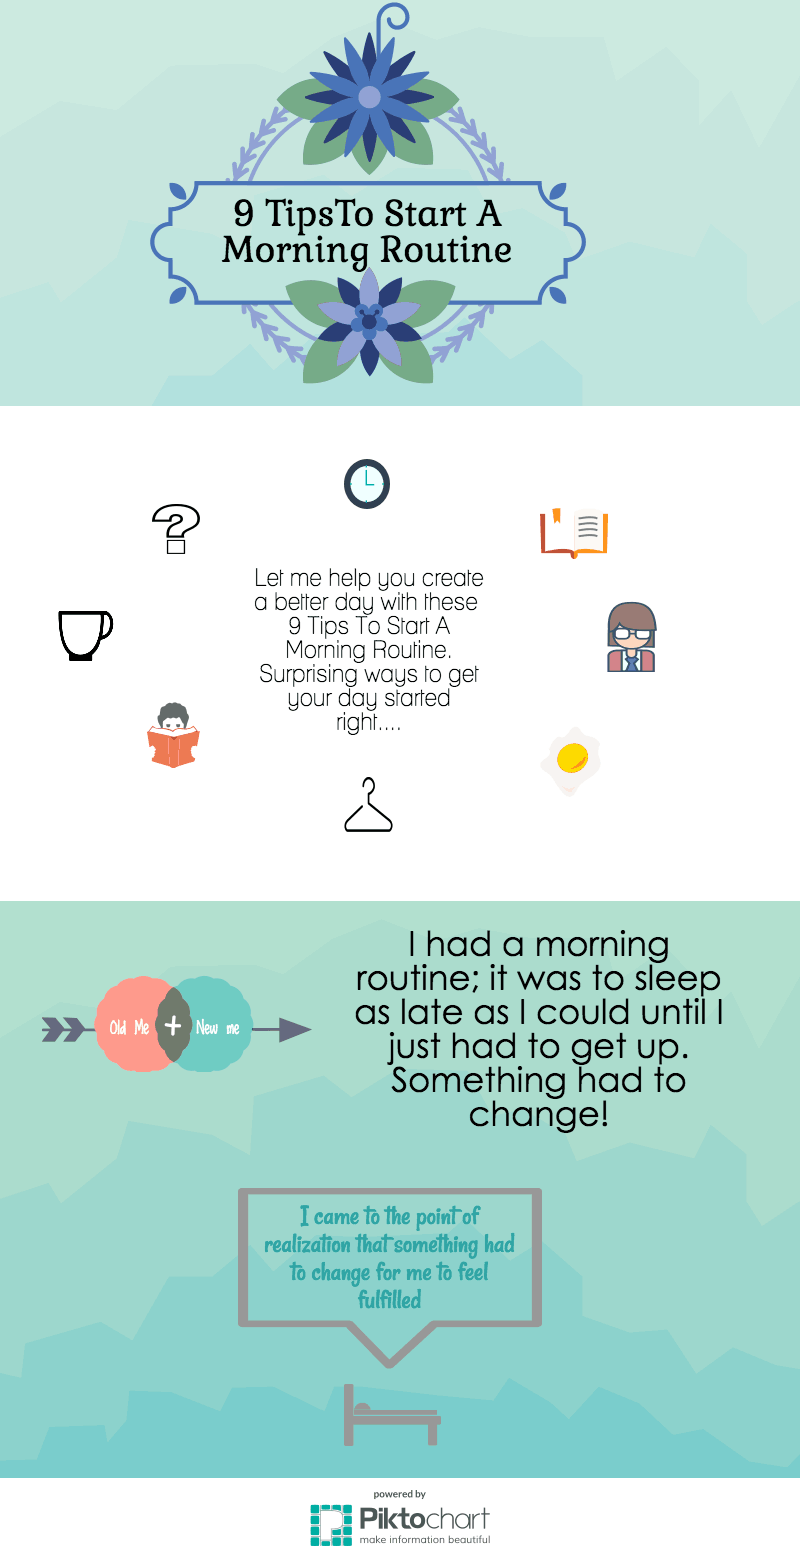 Let me help you create a better day with these 9 Tips To Start A Morning Routine. Surprising ways to get your day started right....